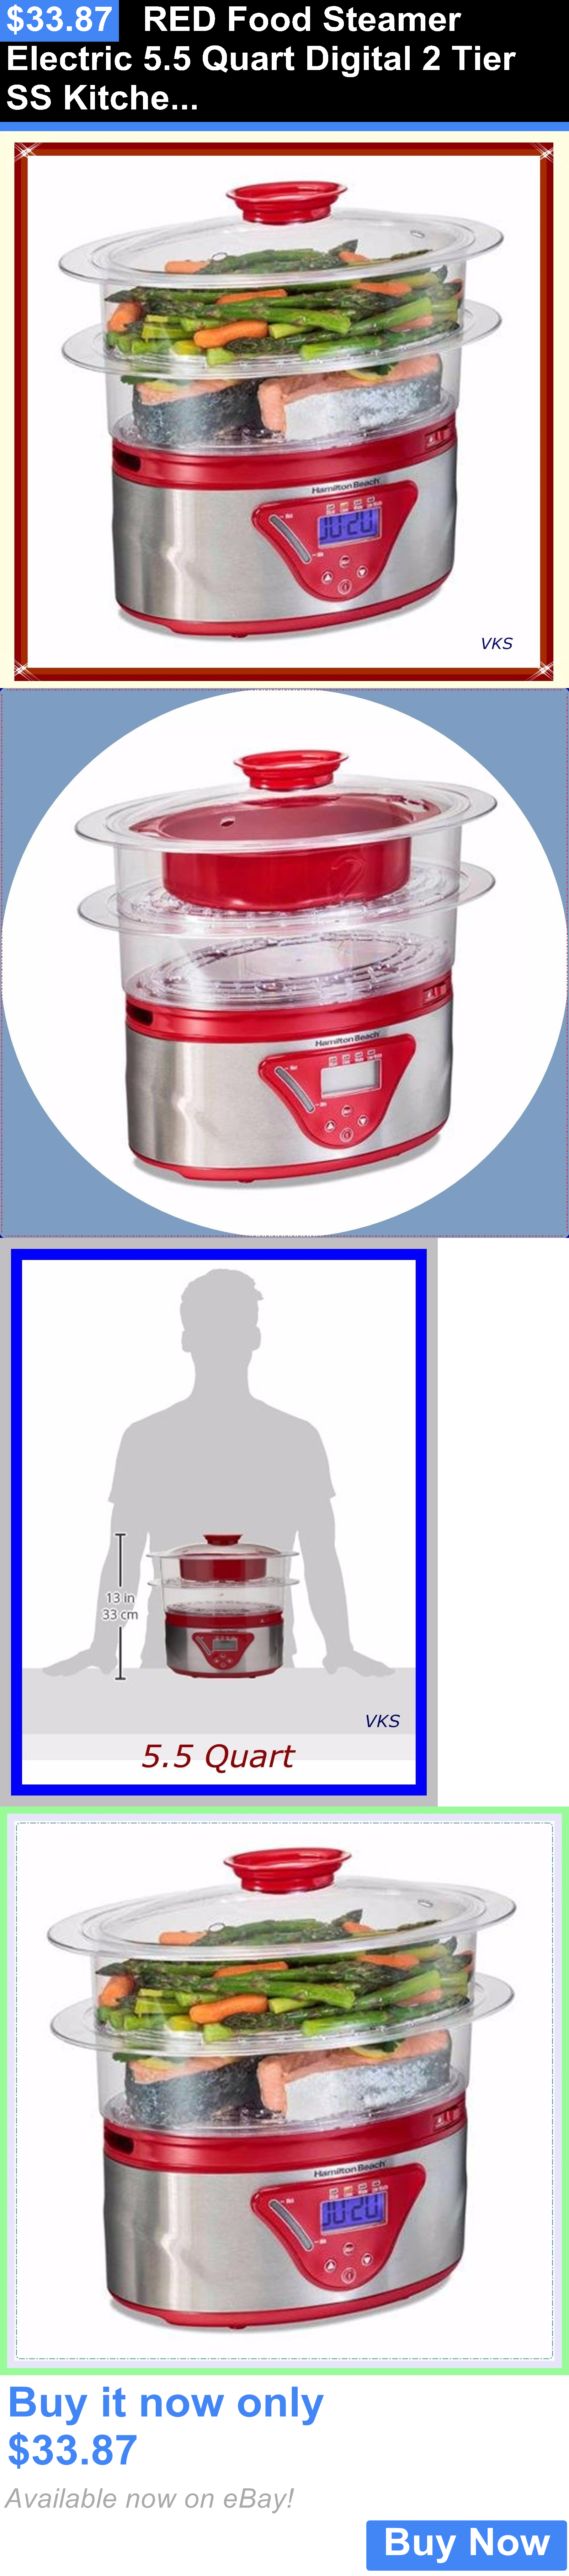 Food Storage For Small Kitchen Small Kitchen Appliances Red Food Steamer Electric 55 Quart